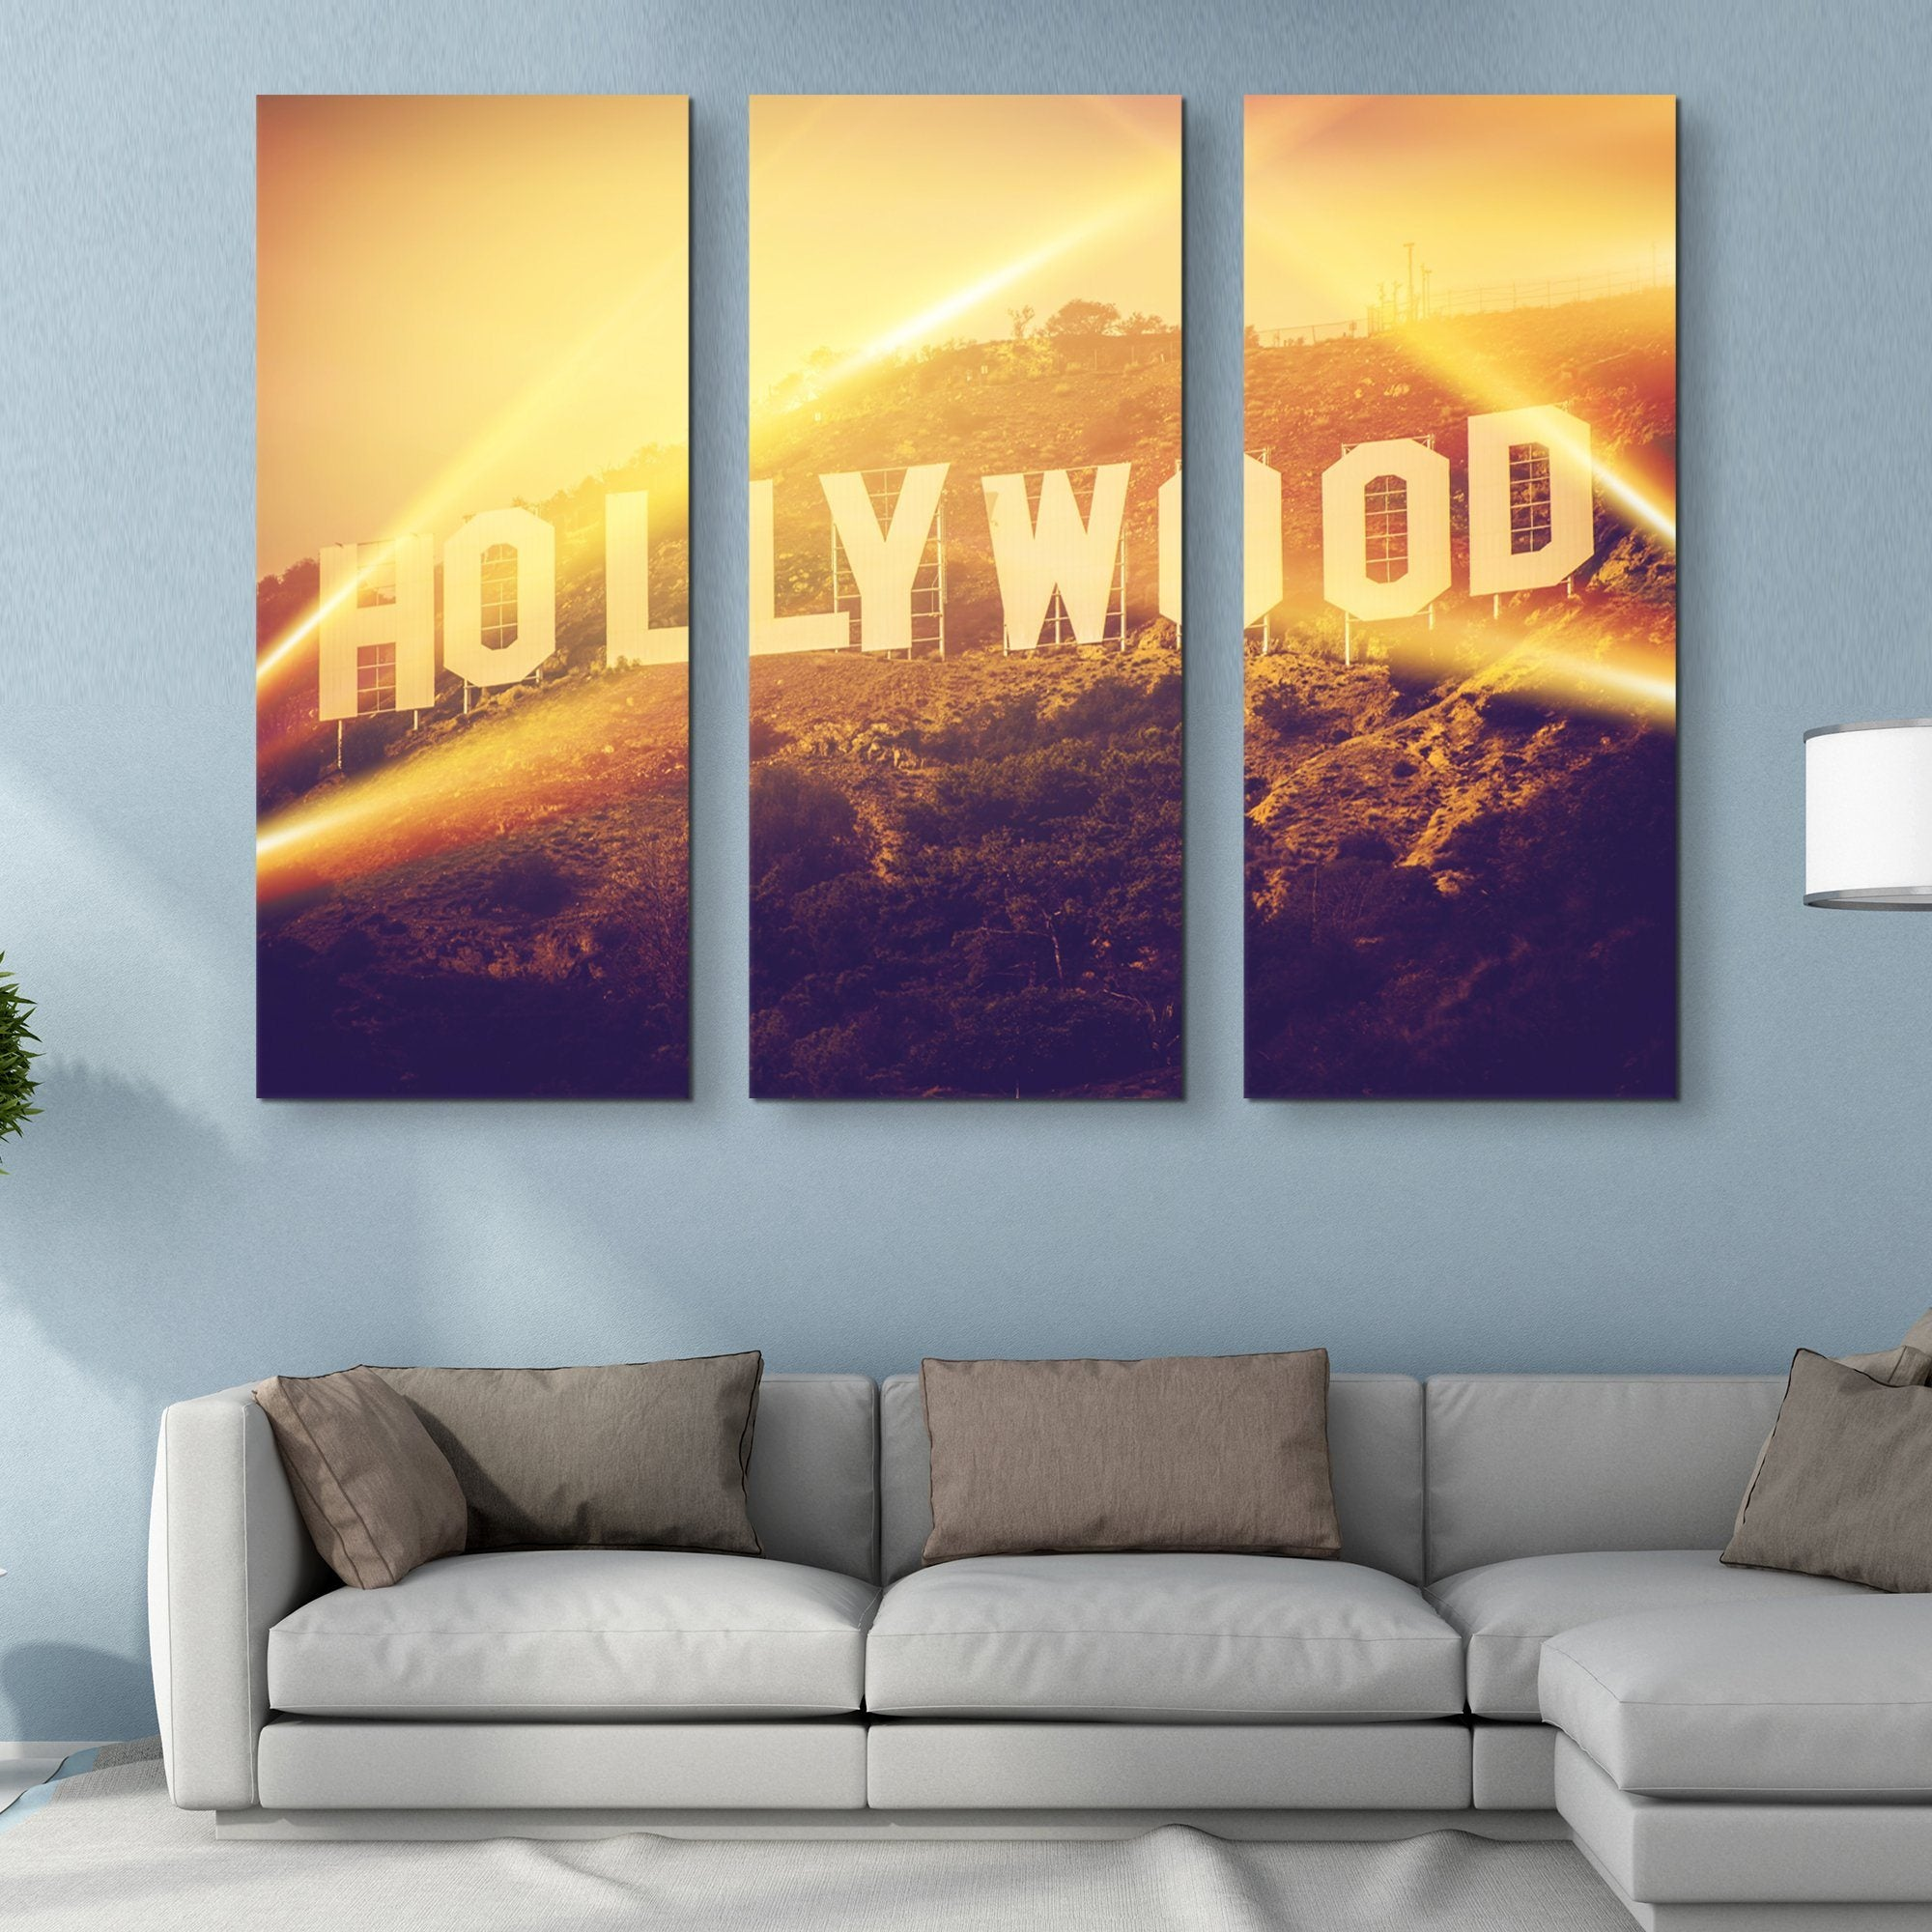 3 piece Hollywood wall art